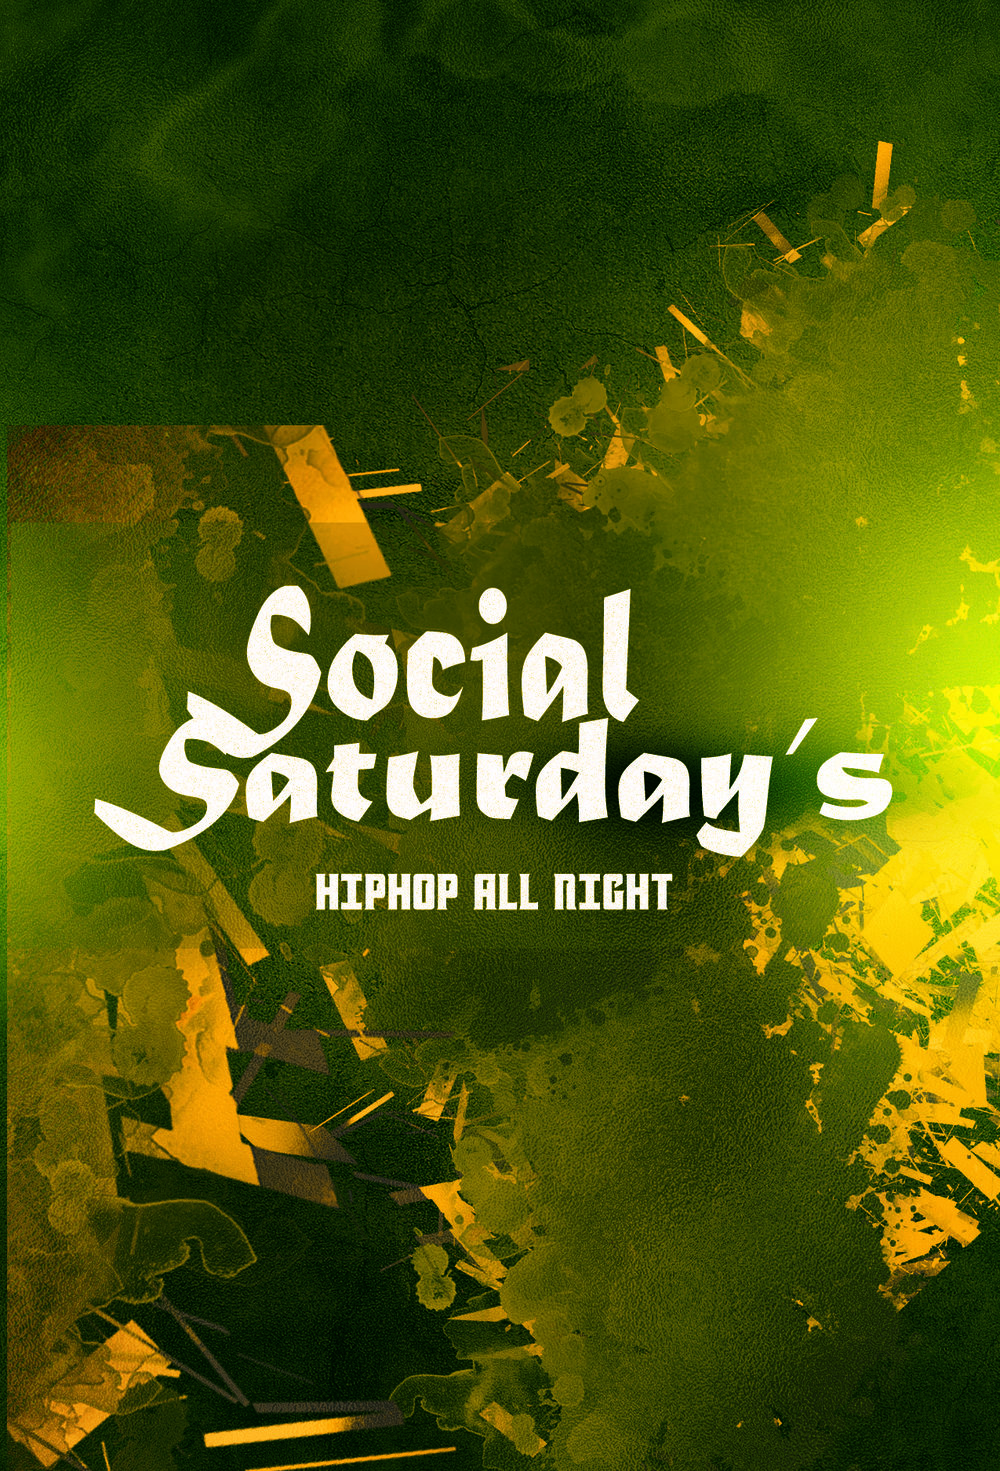 FroZEN75_SOCIAL SATURDAYS_THIS WEEK ONLINE1_09-00-2016.jpg